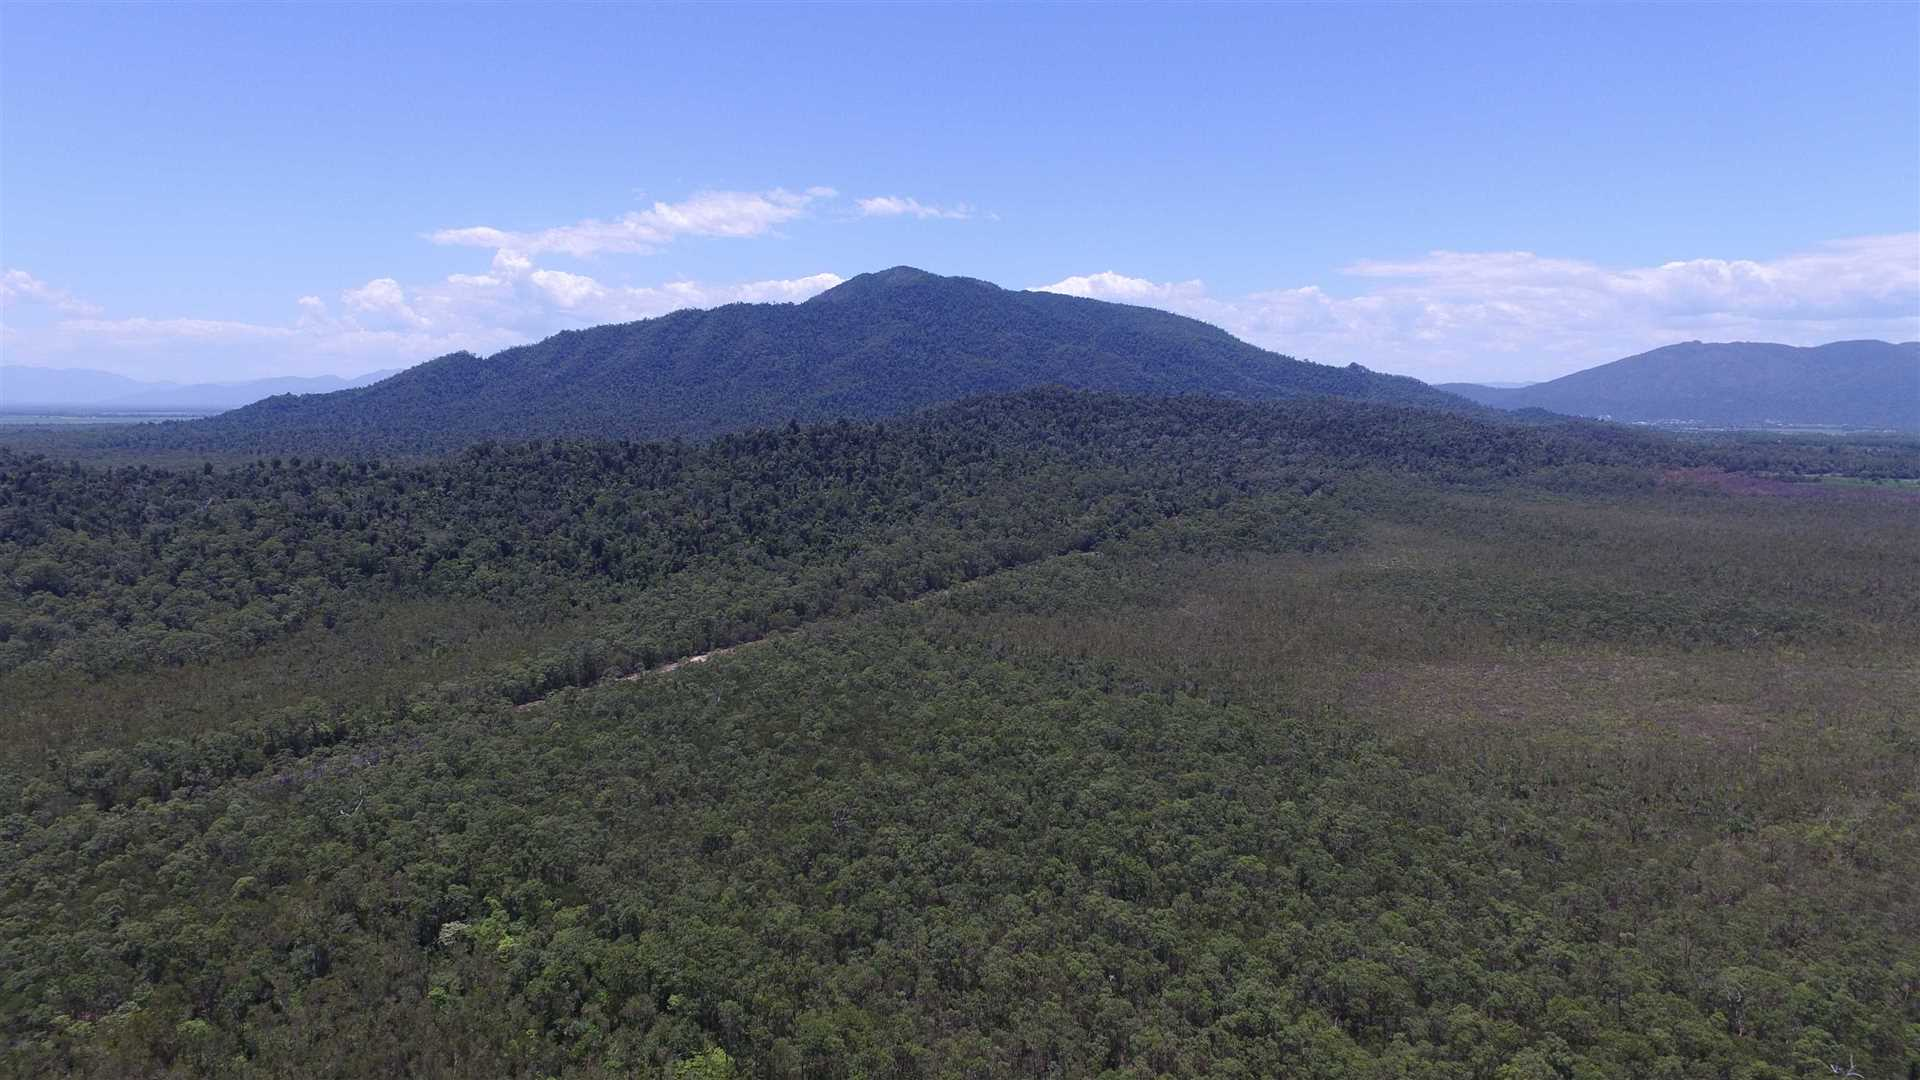 Aerial photo above part of Lot 29 showing parts of Lot 29 & Lot 70 looking towards Mount Mackay and Mount Mackay National Park